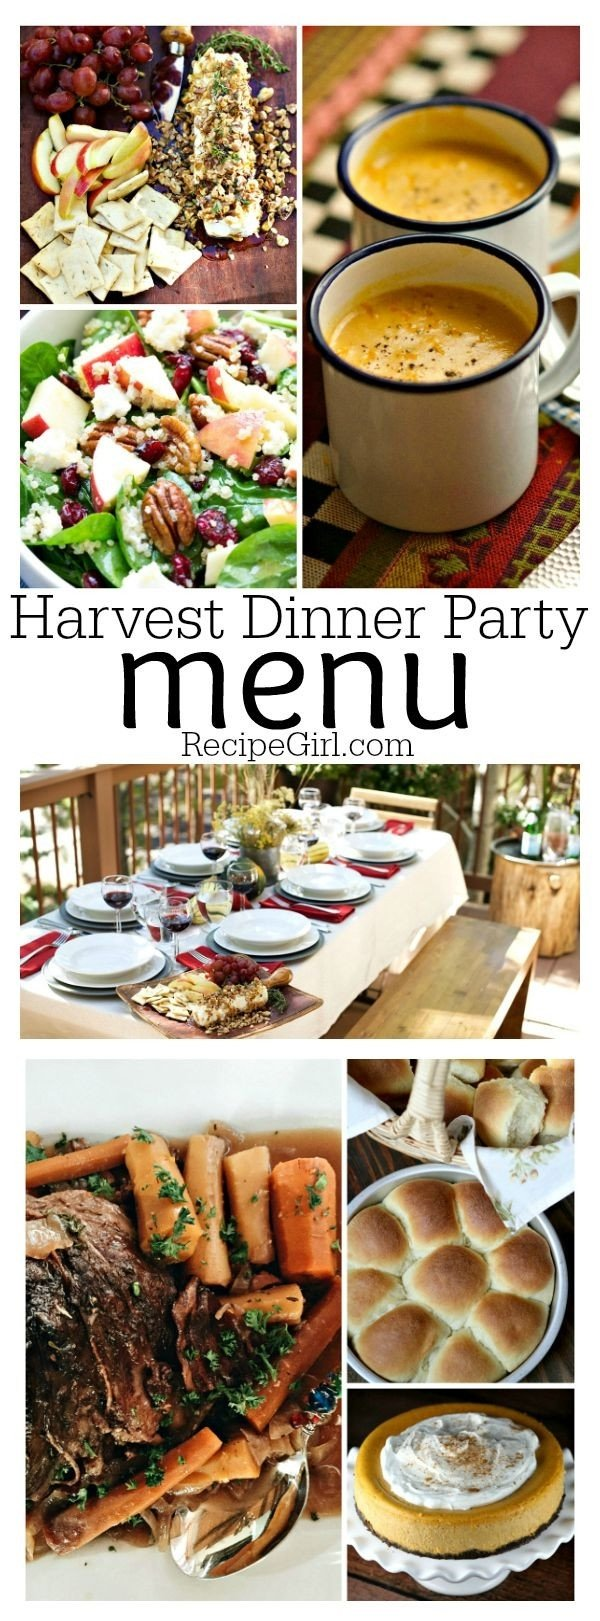 10 attractive dinner party menu ideas for 20